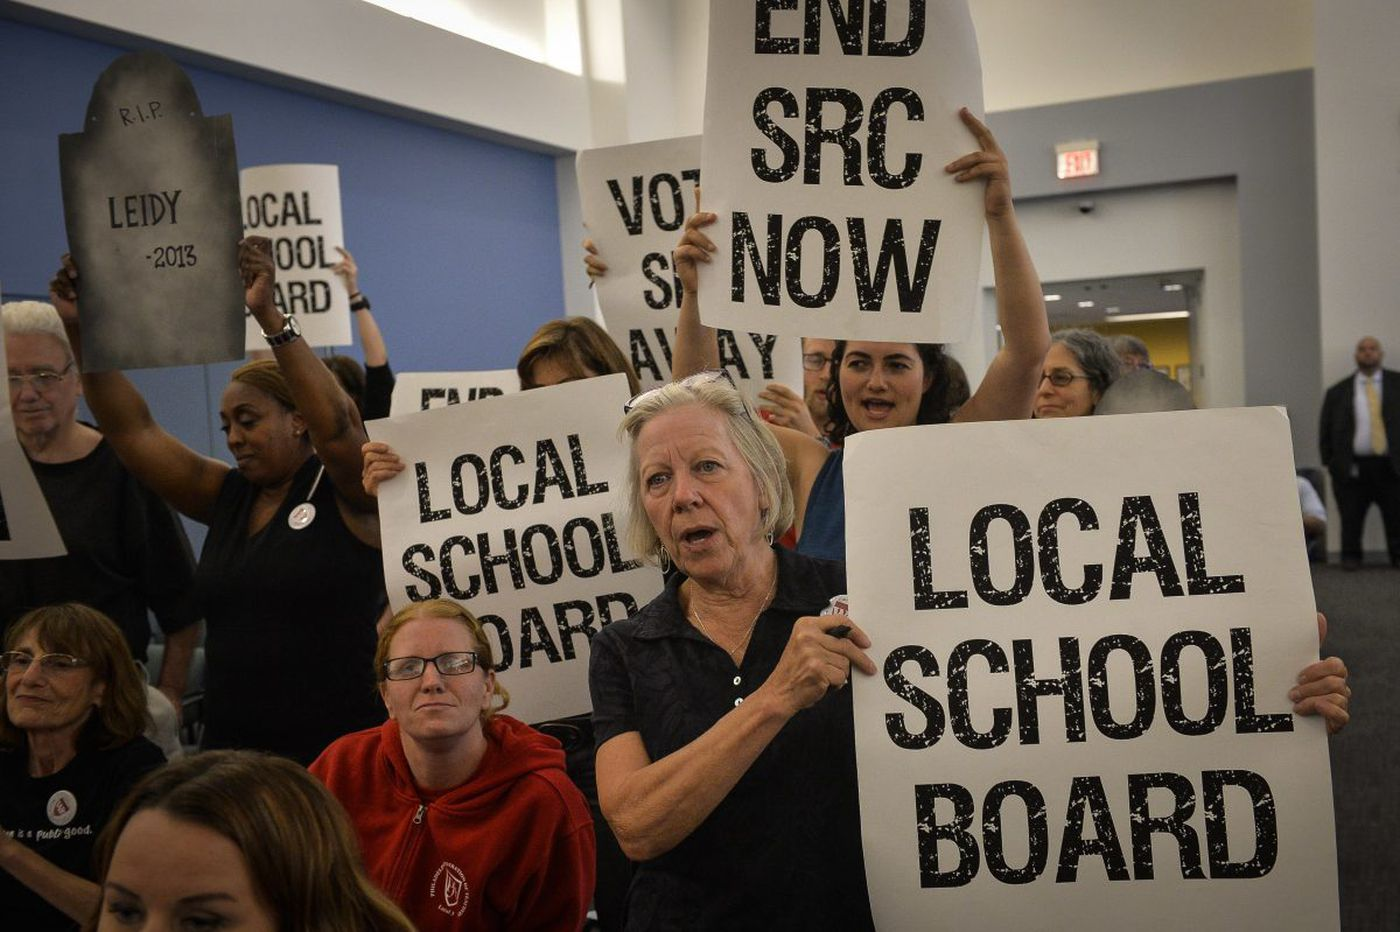 Philly needs local school control, with a mayor-appointed board | Opinion